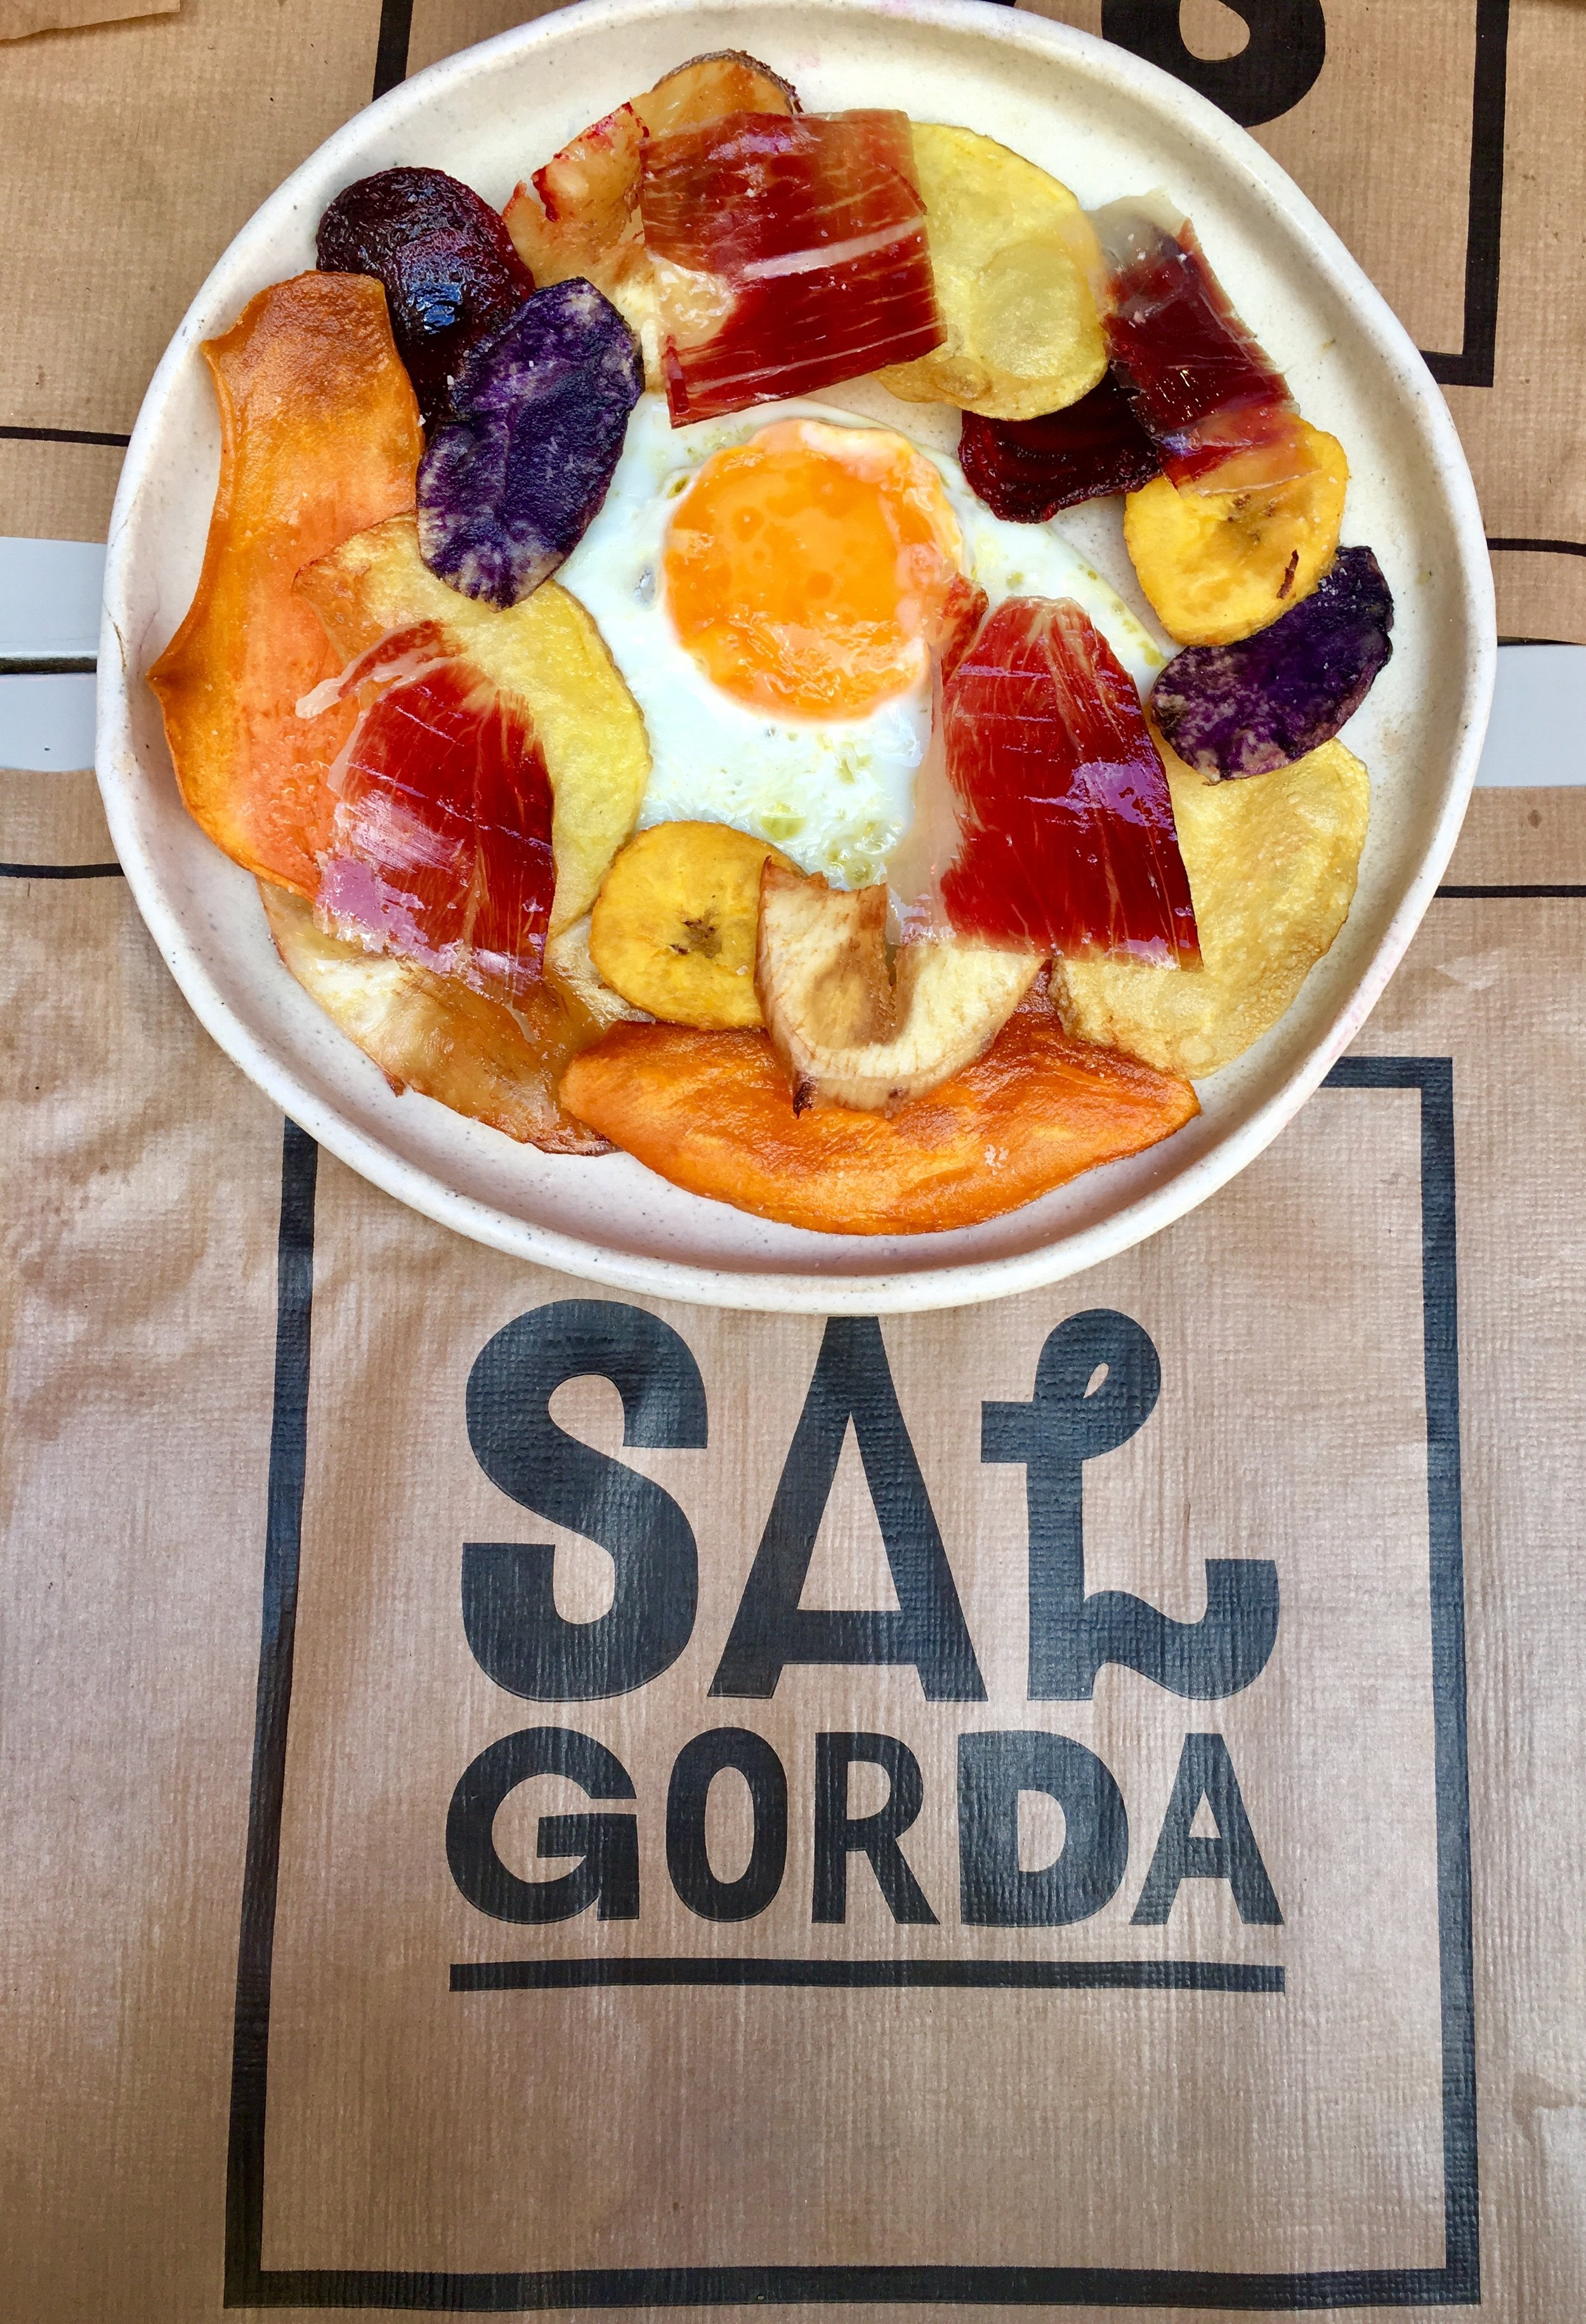 A daily special item at Sal Gorda using the famous Seville jamón.